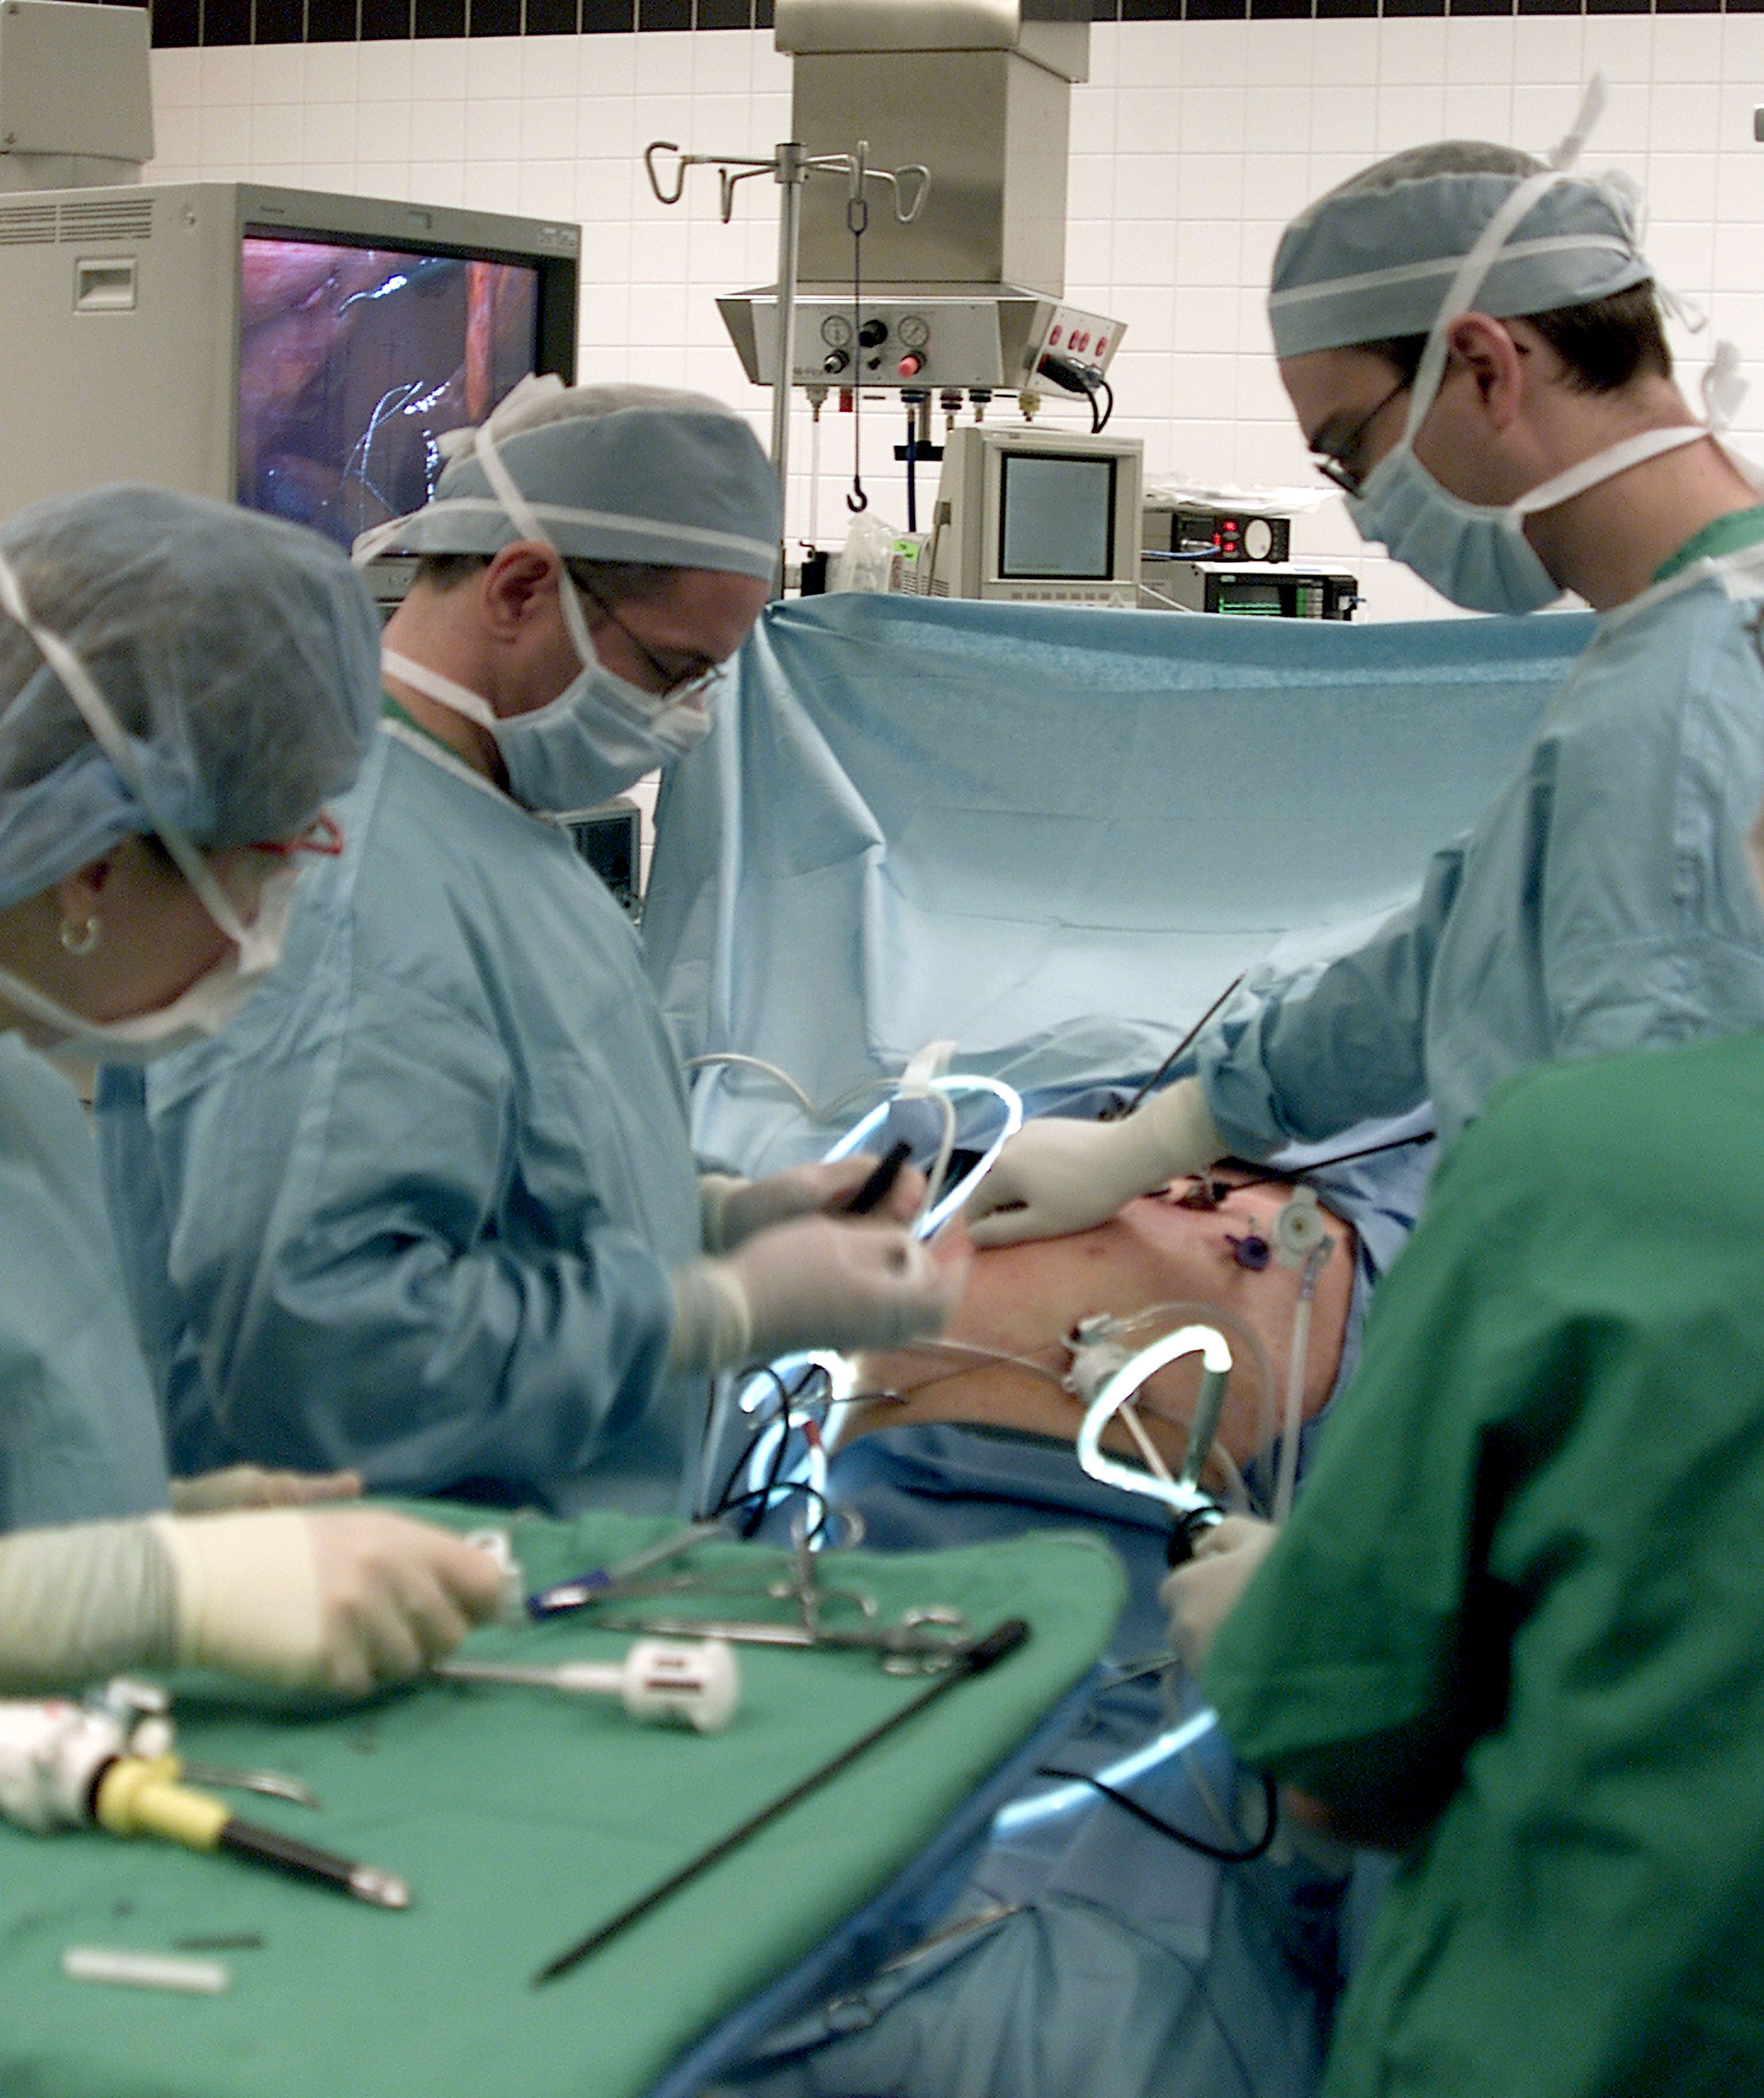 Dr. Raymond Onders (C) uses laparoscopic surgery to implant electrodes in Christopher Reeve's diaphragm at University Hospitals of Cleveland February 28, 2003, in Cleveland, Ohio. (Getty)